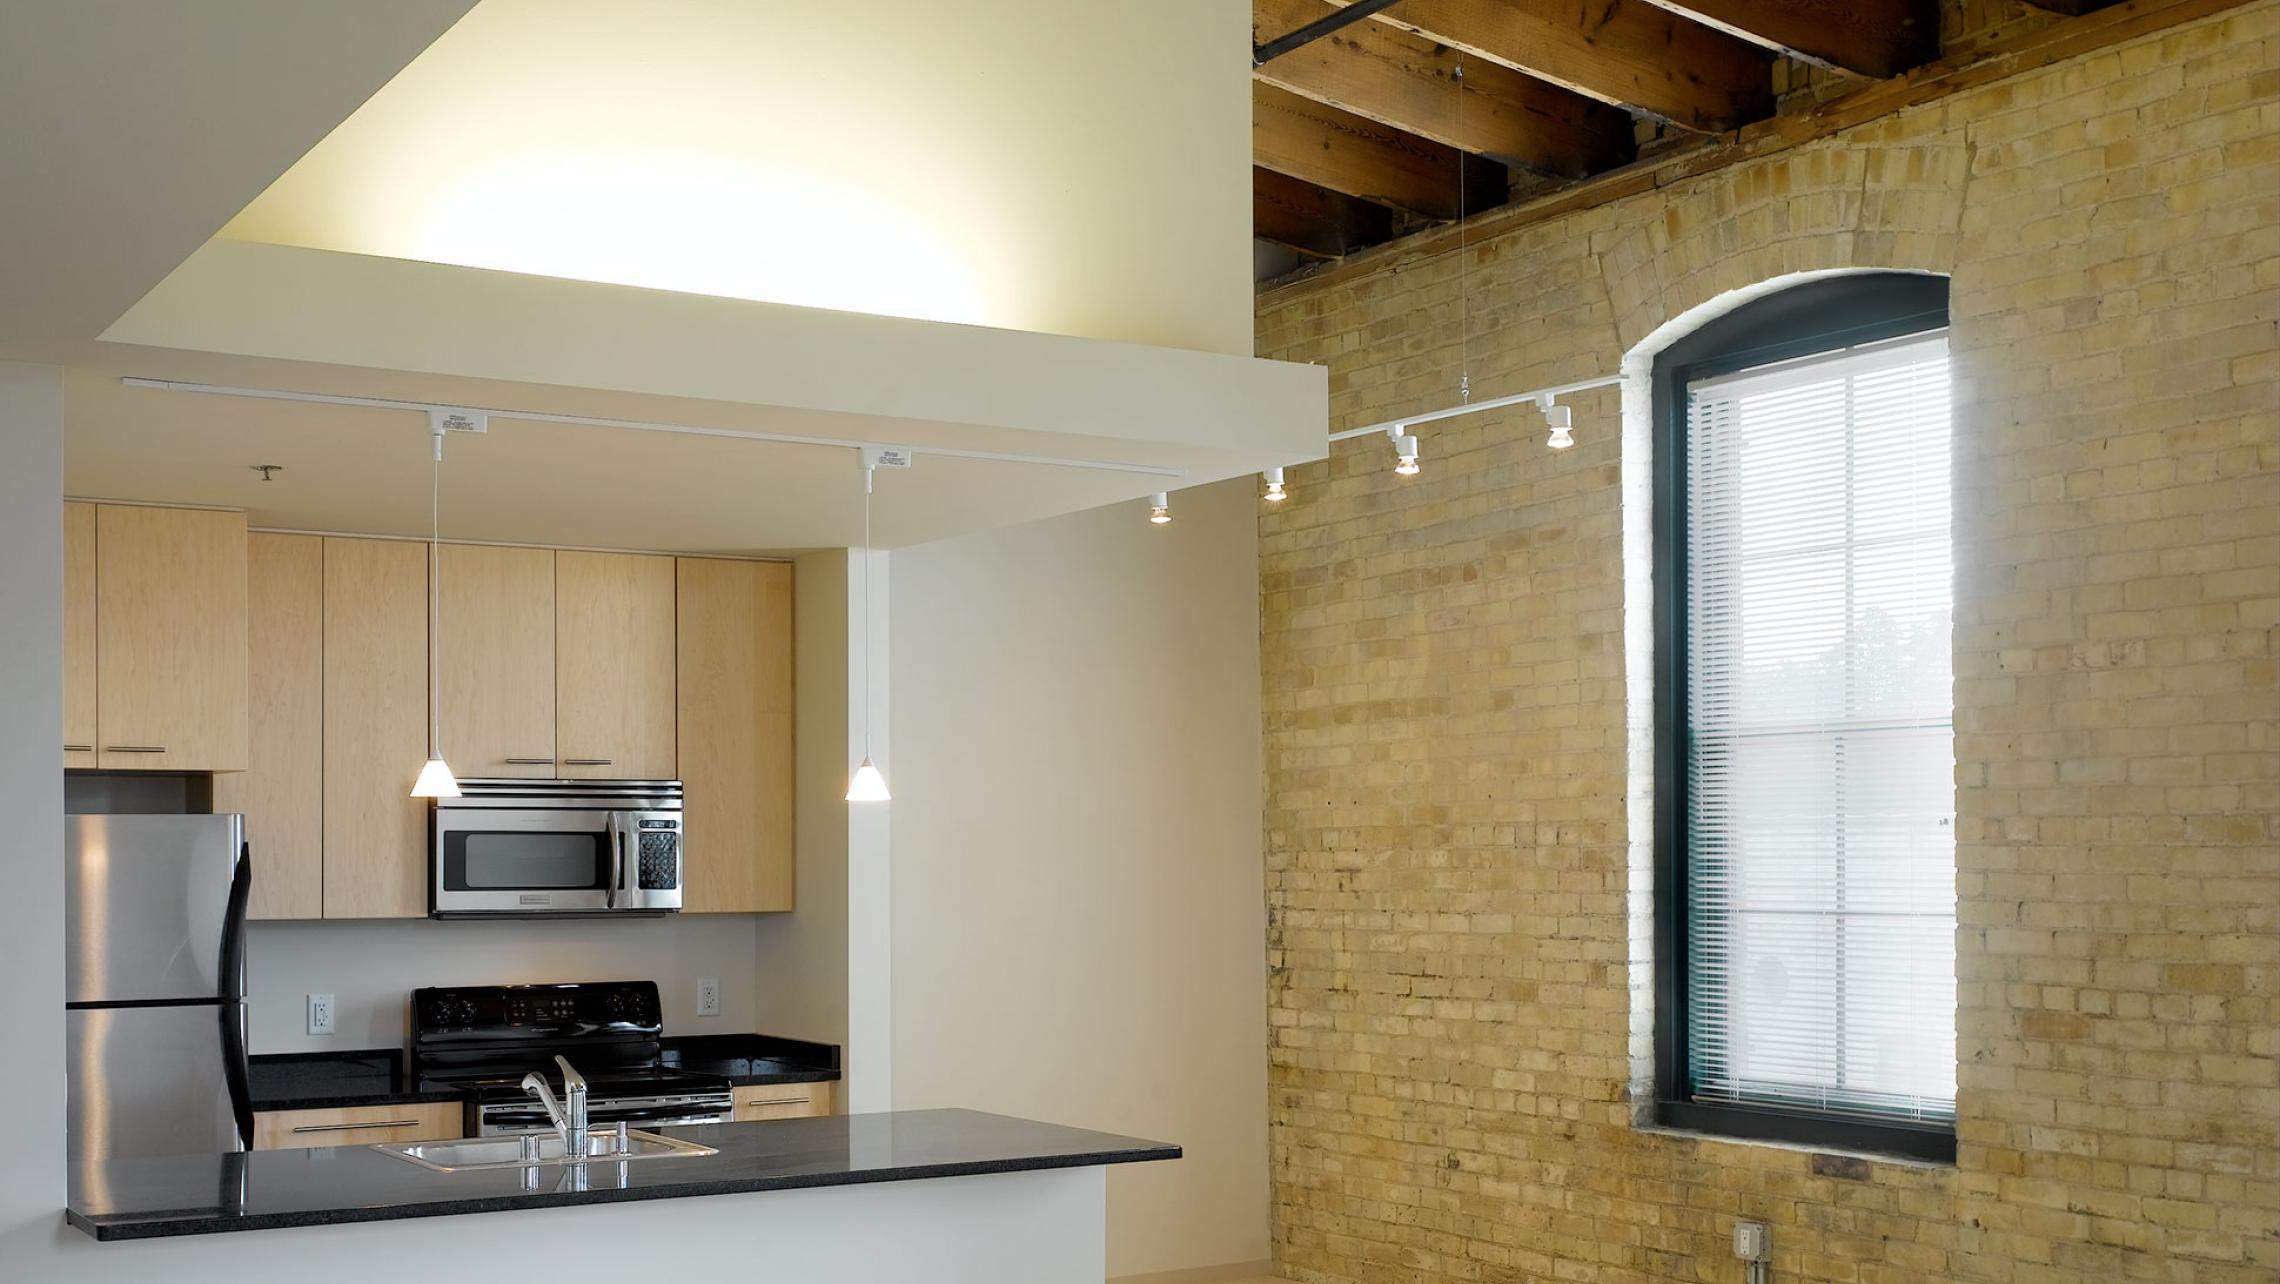 ULI Tobacco Loft Apartments - Kitchen with Exposed Brick